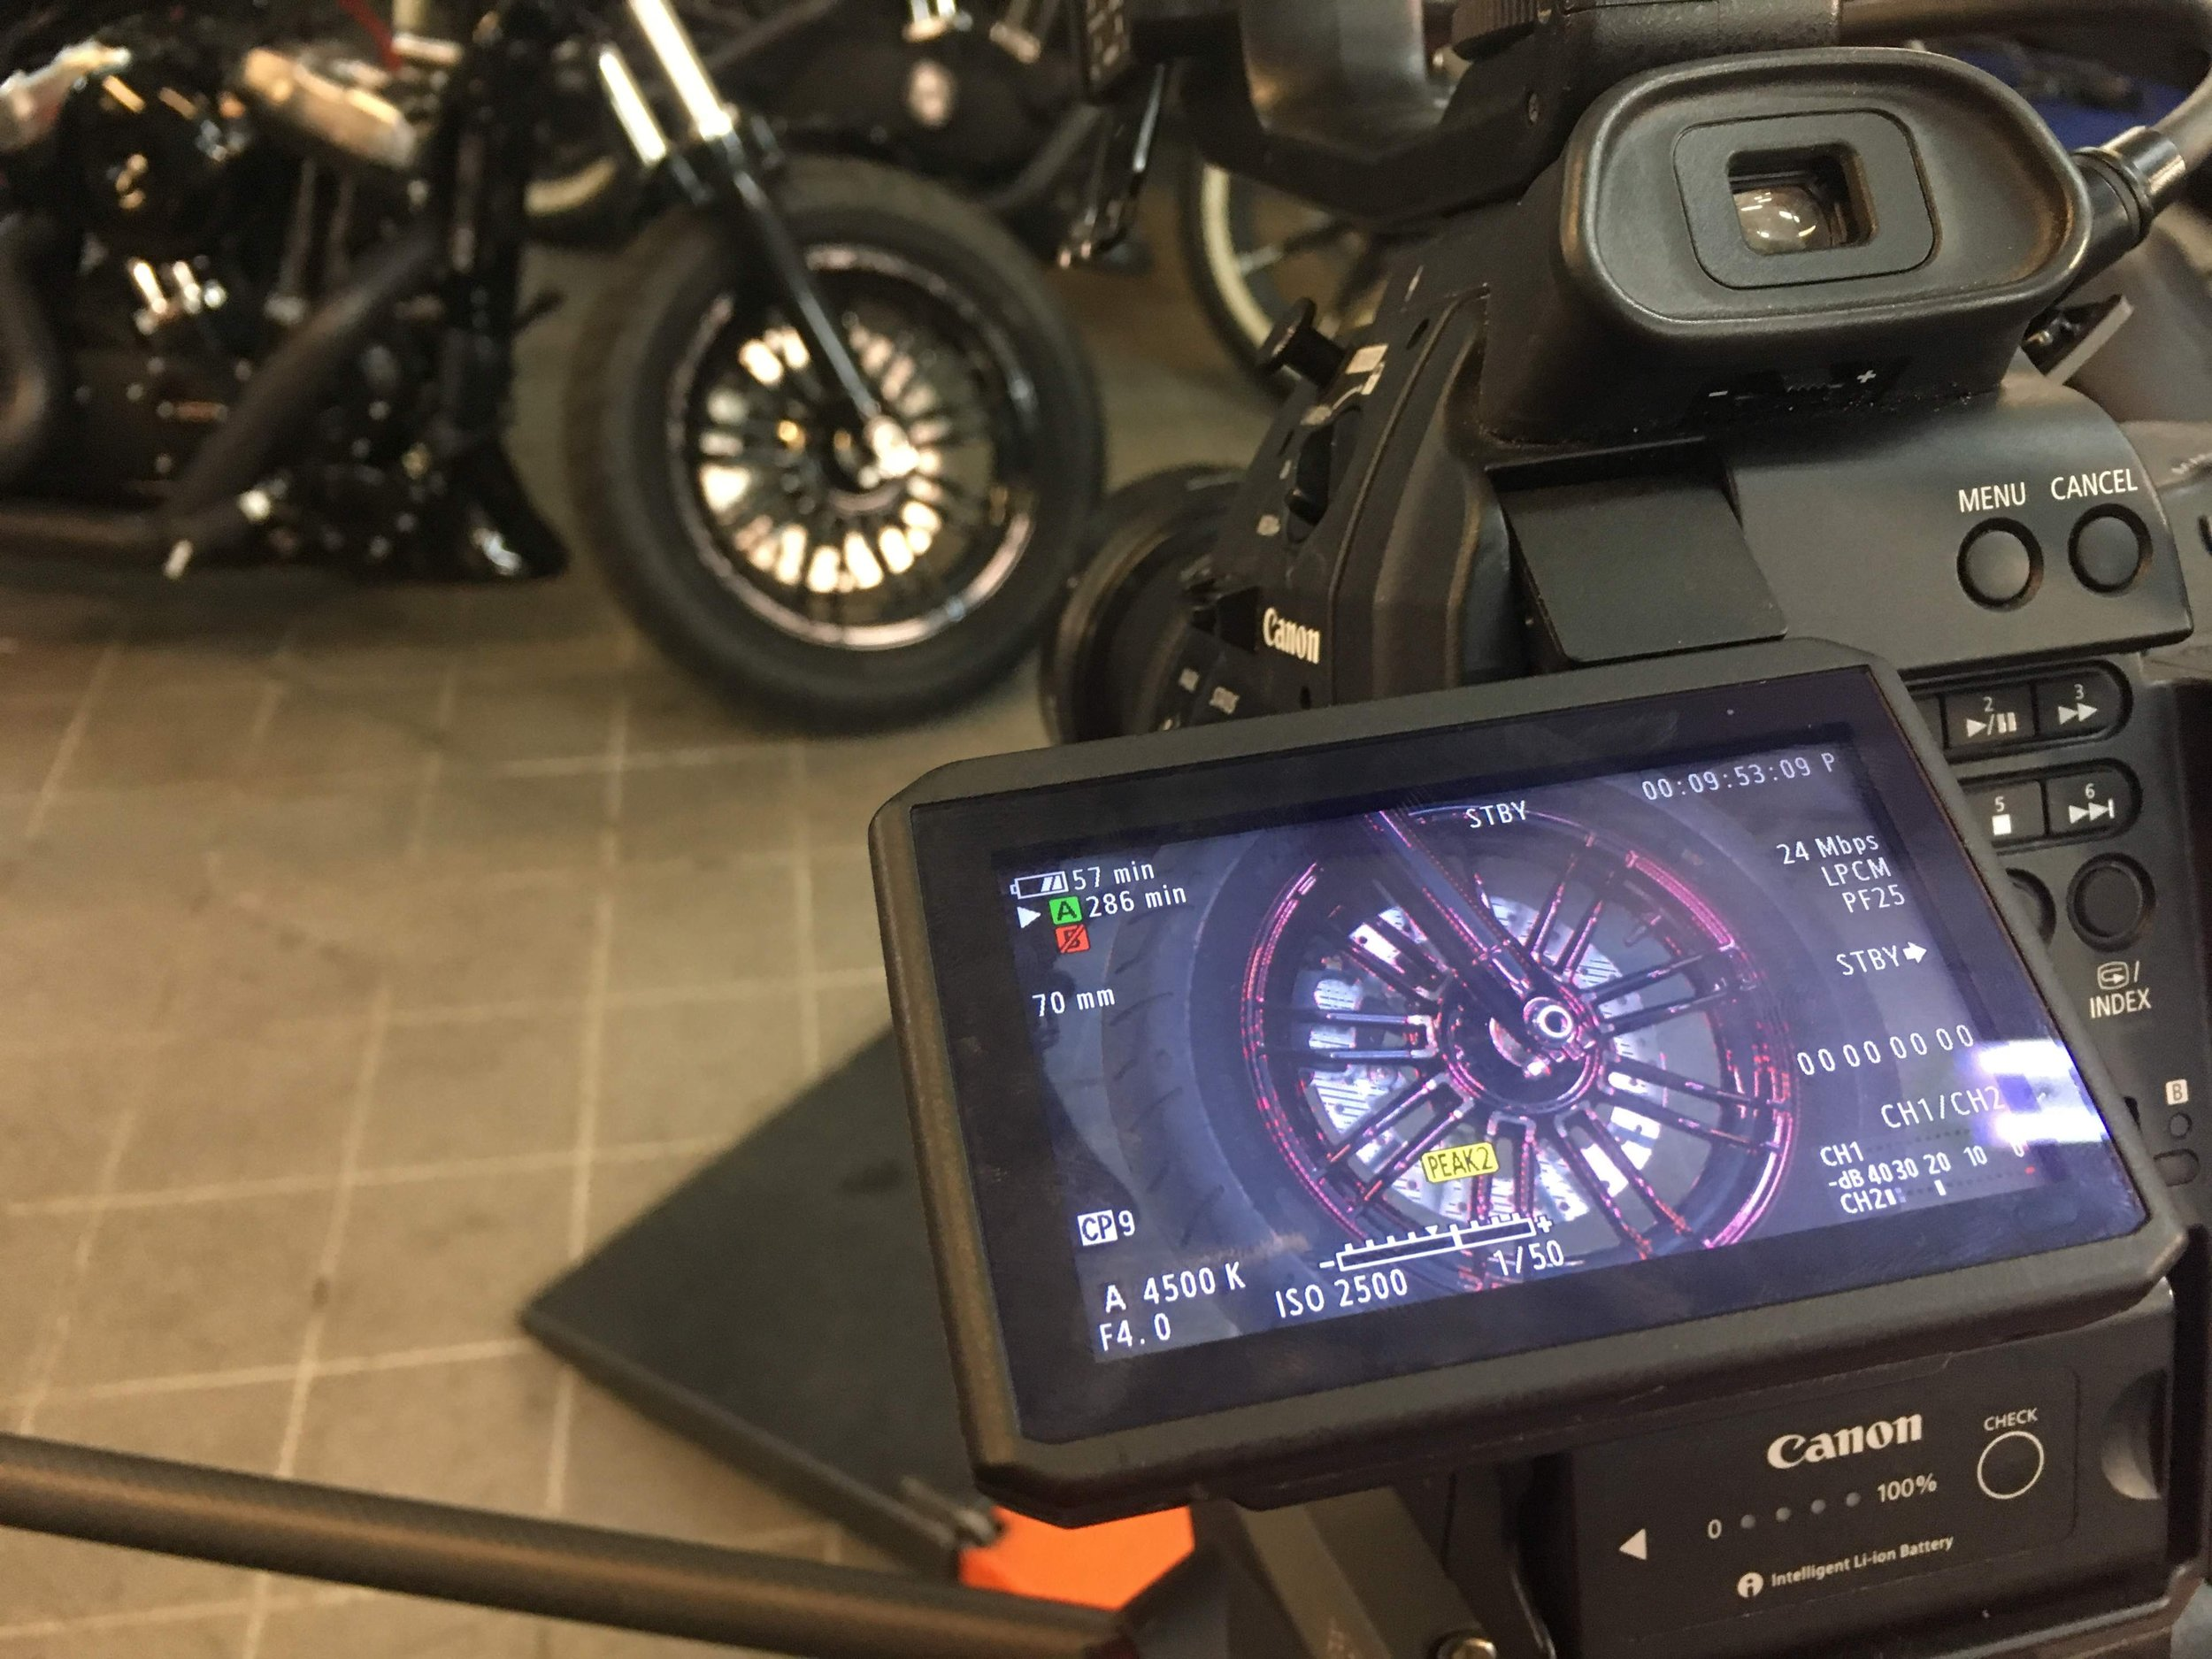 Professional video camera pointing at motorcycle wheel